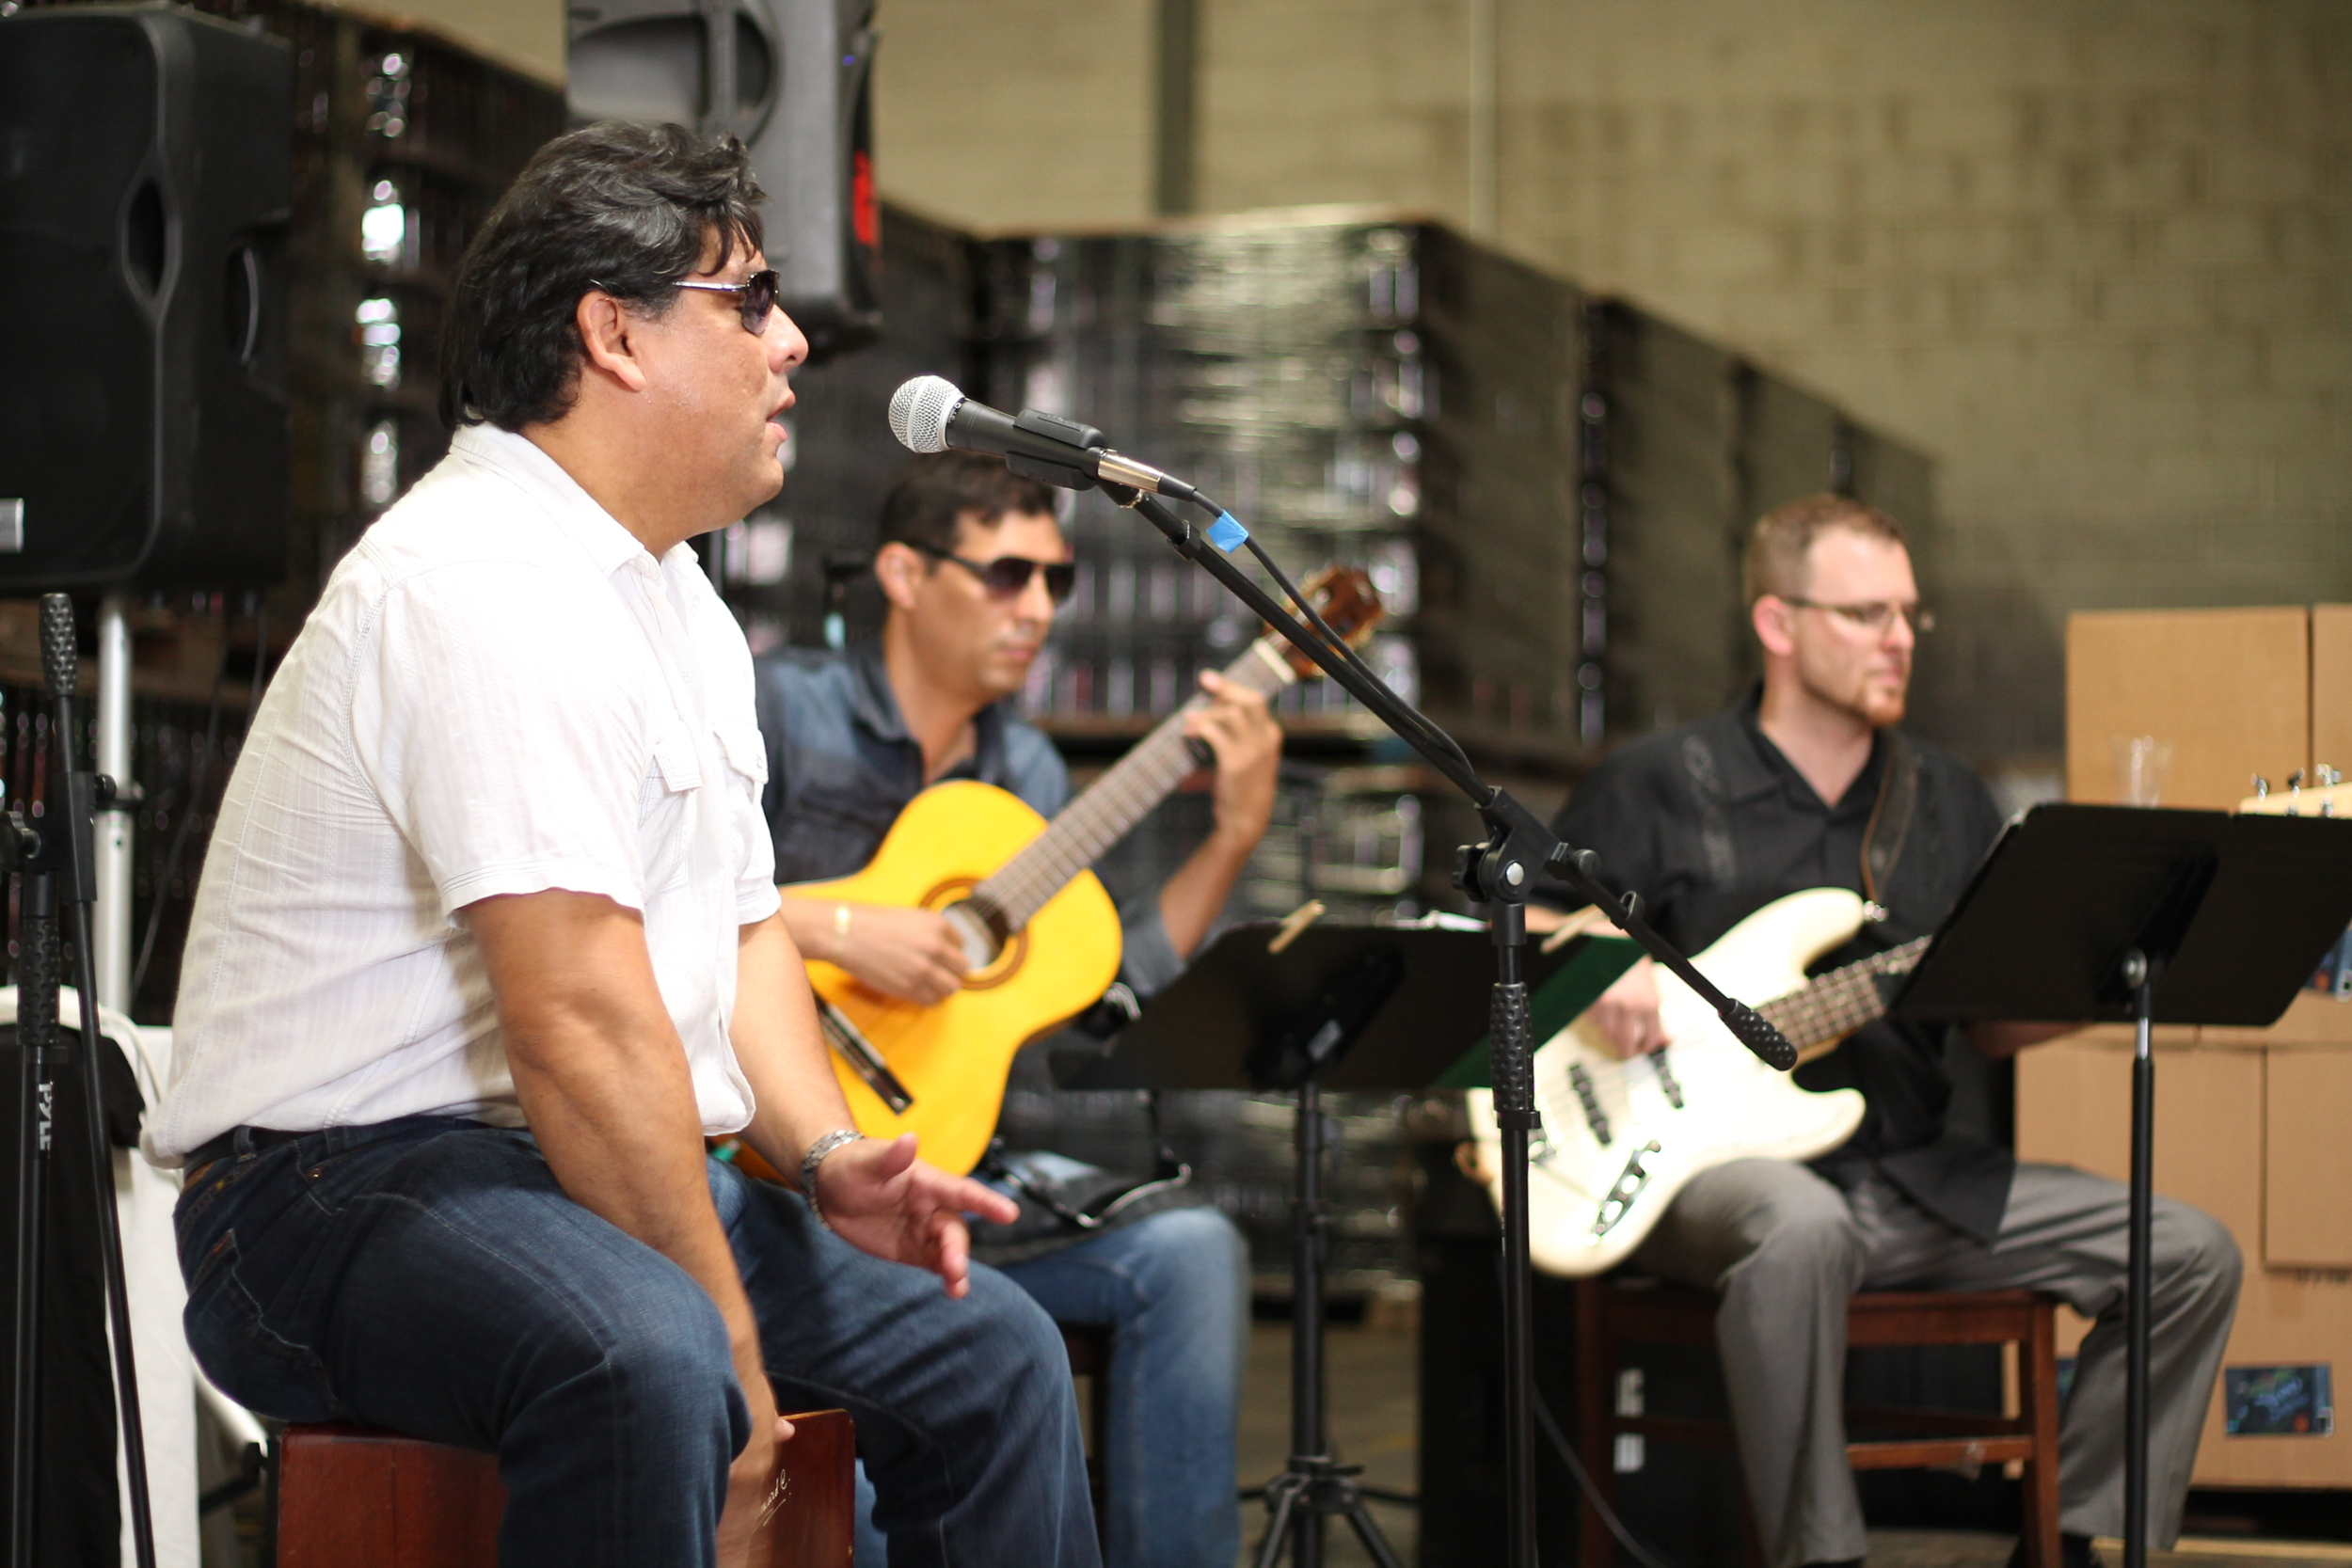 Live Latin American tunes and DJs provided background grooves.